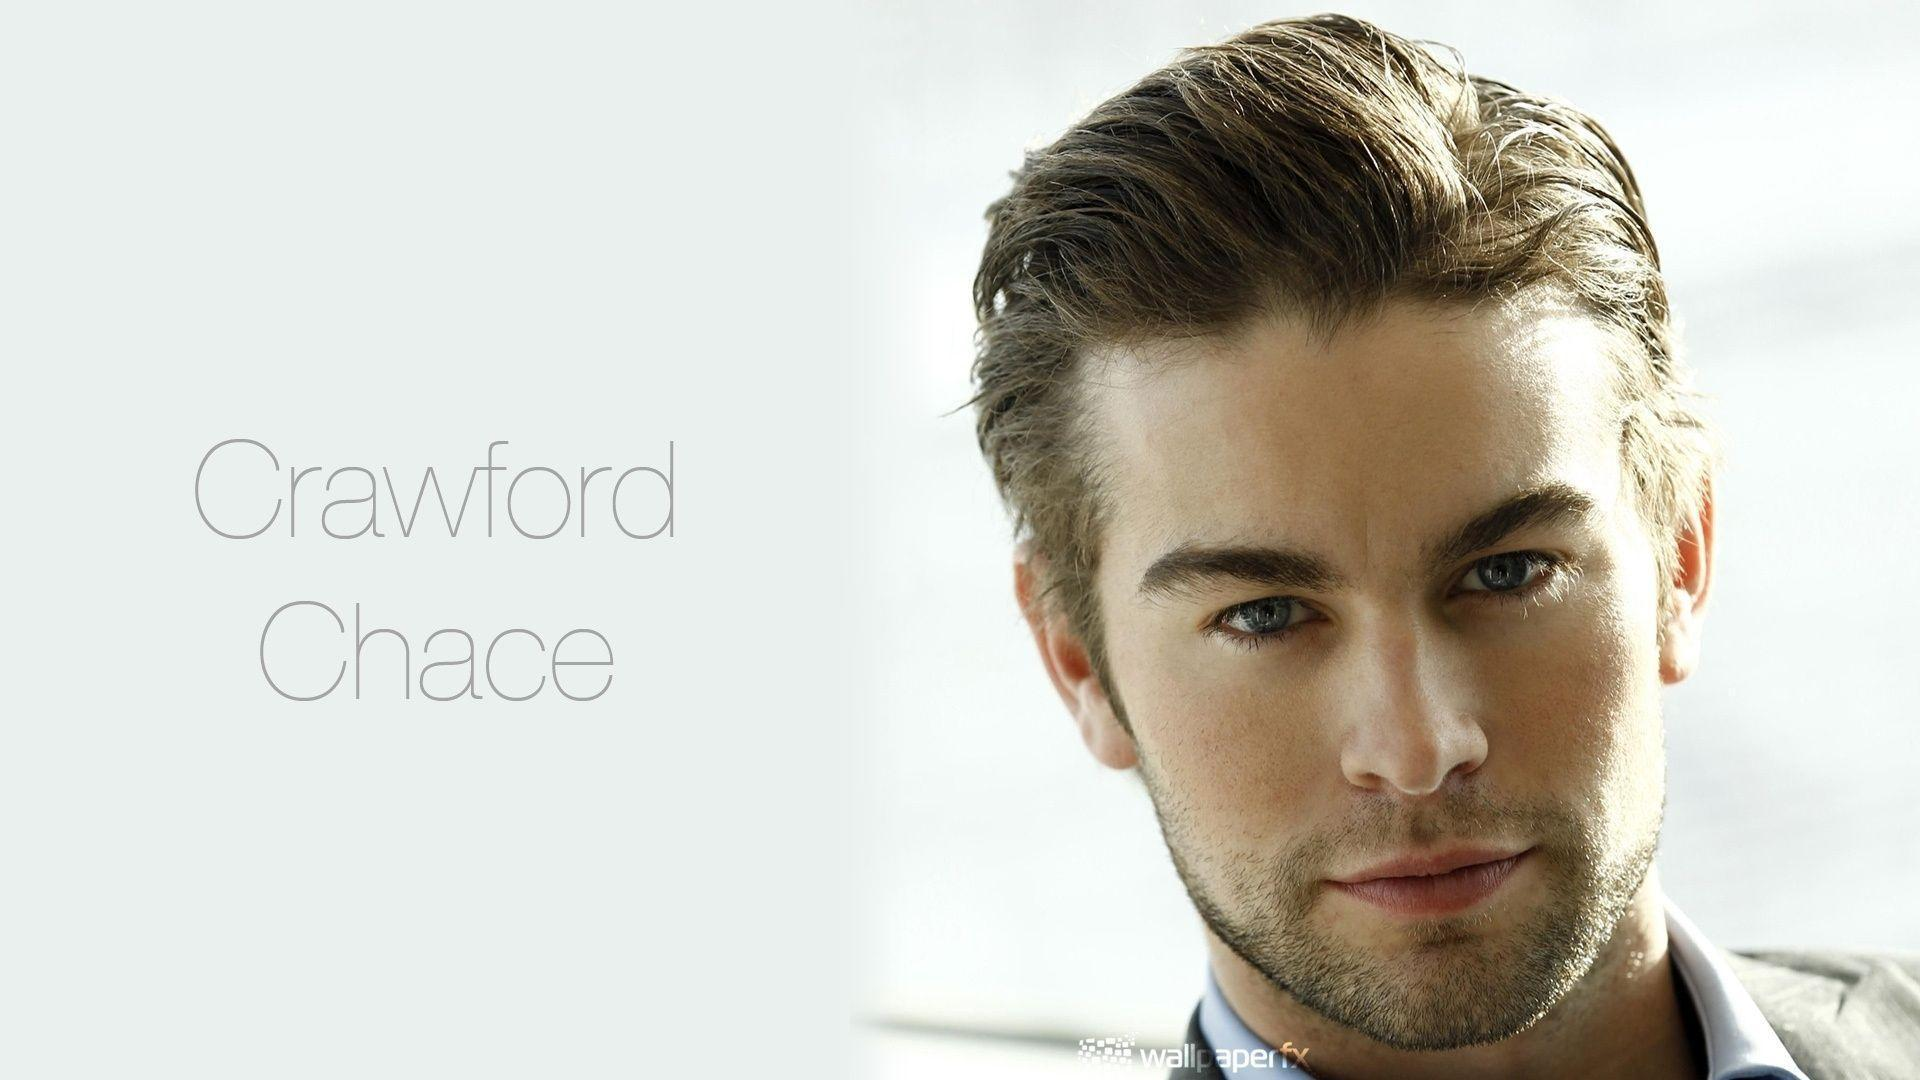 Cartoon pictures of chace crawford - Fonds D Cran Chace Crawford Tous Les Wallpapers Chace Crawford